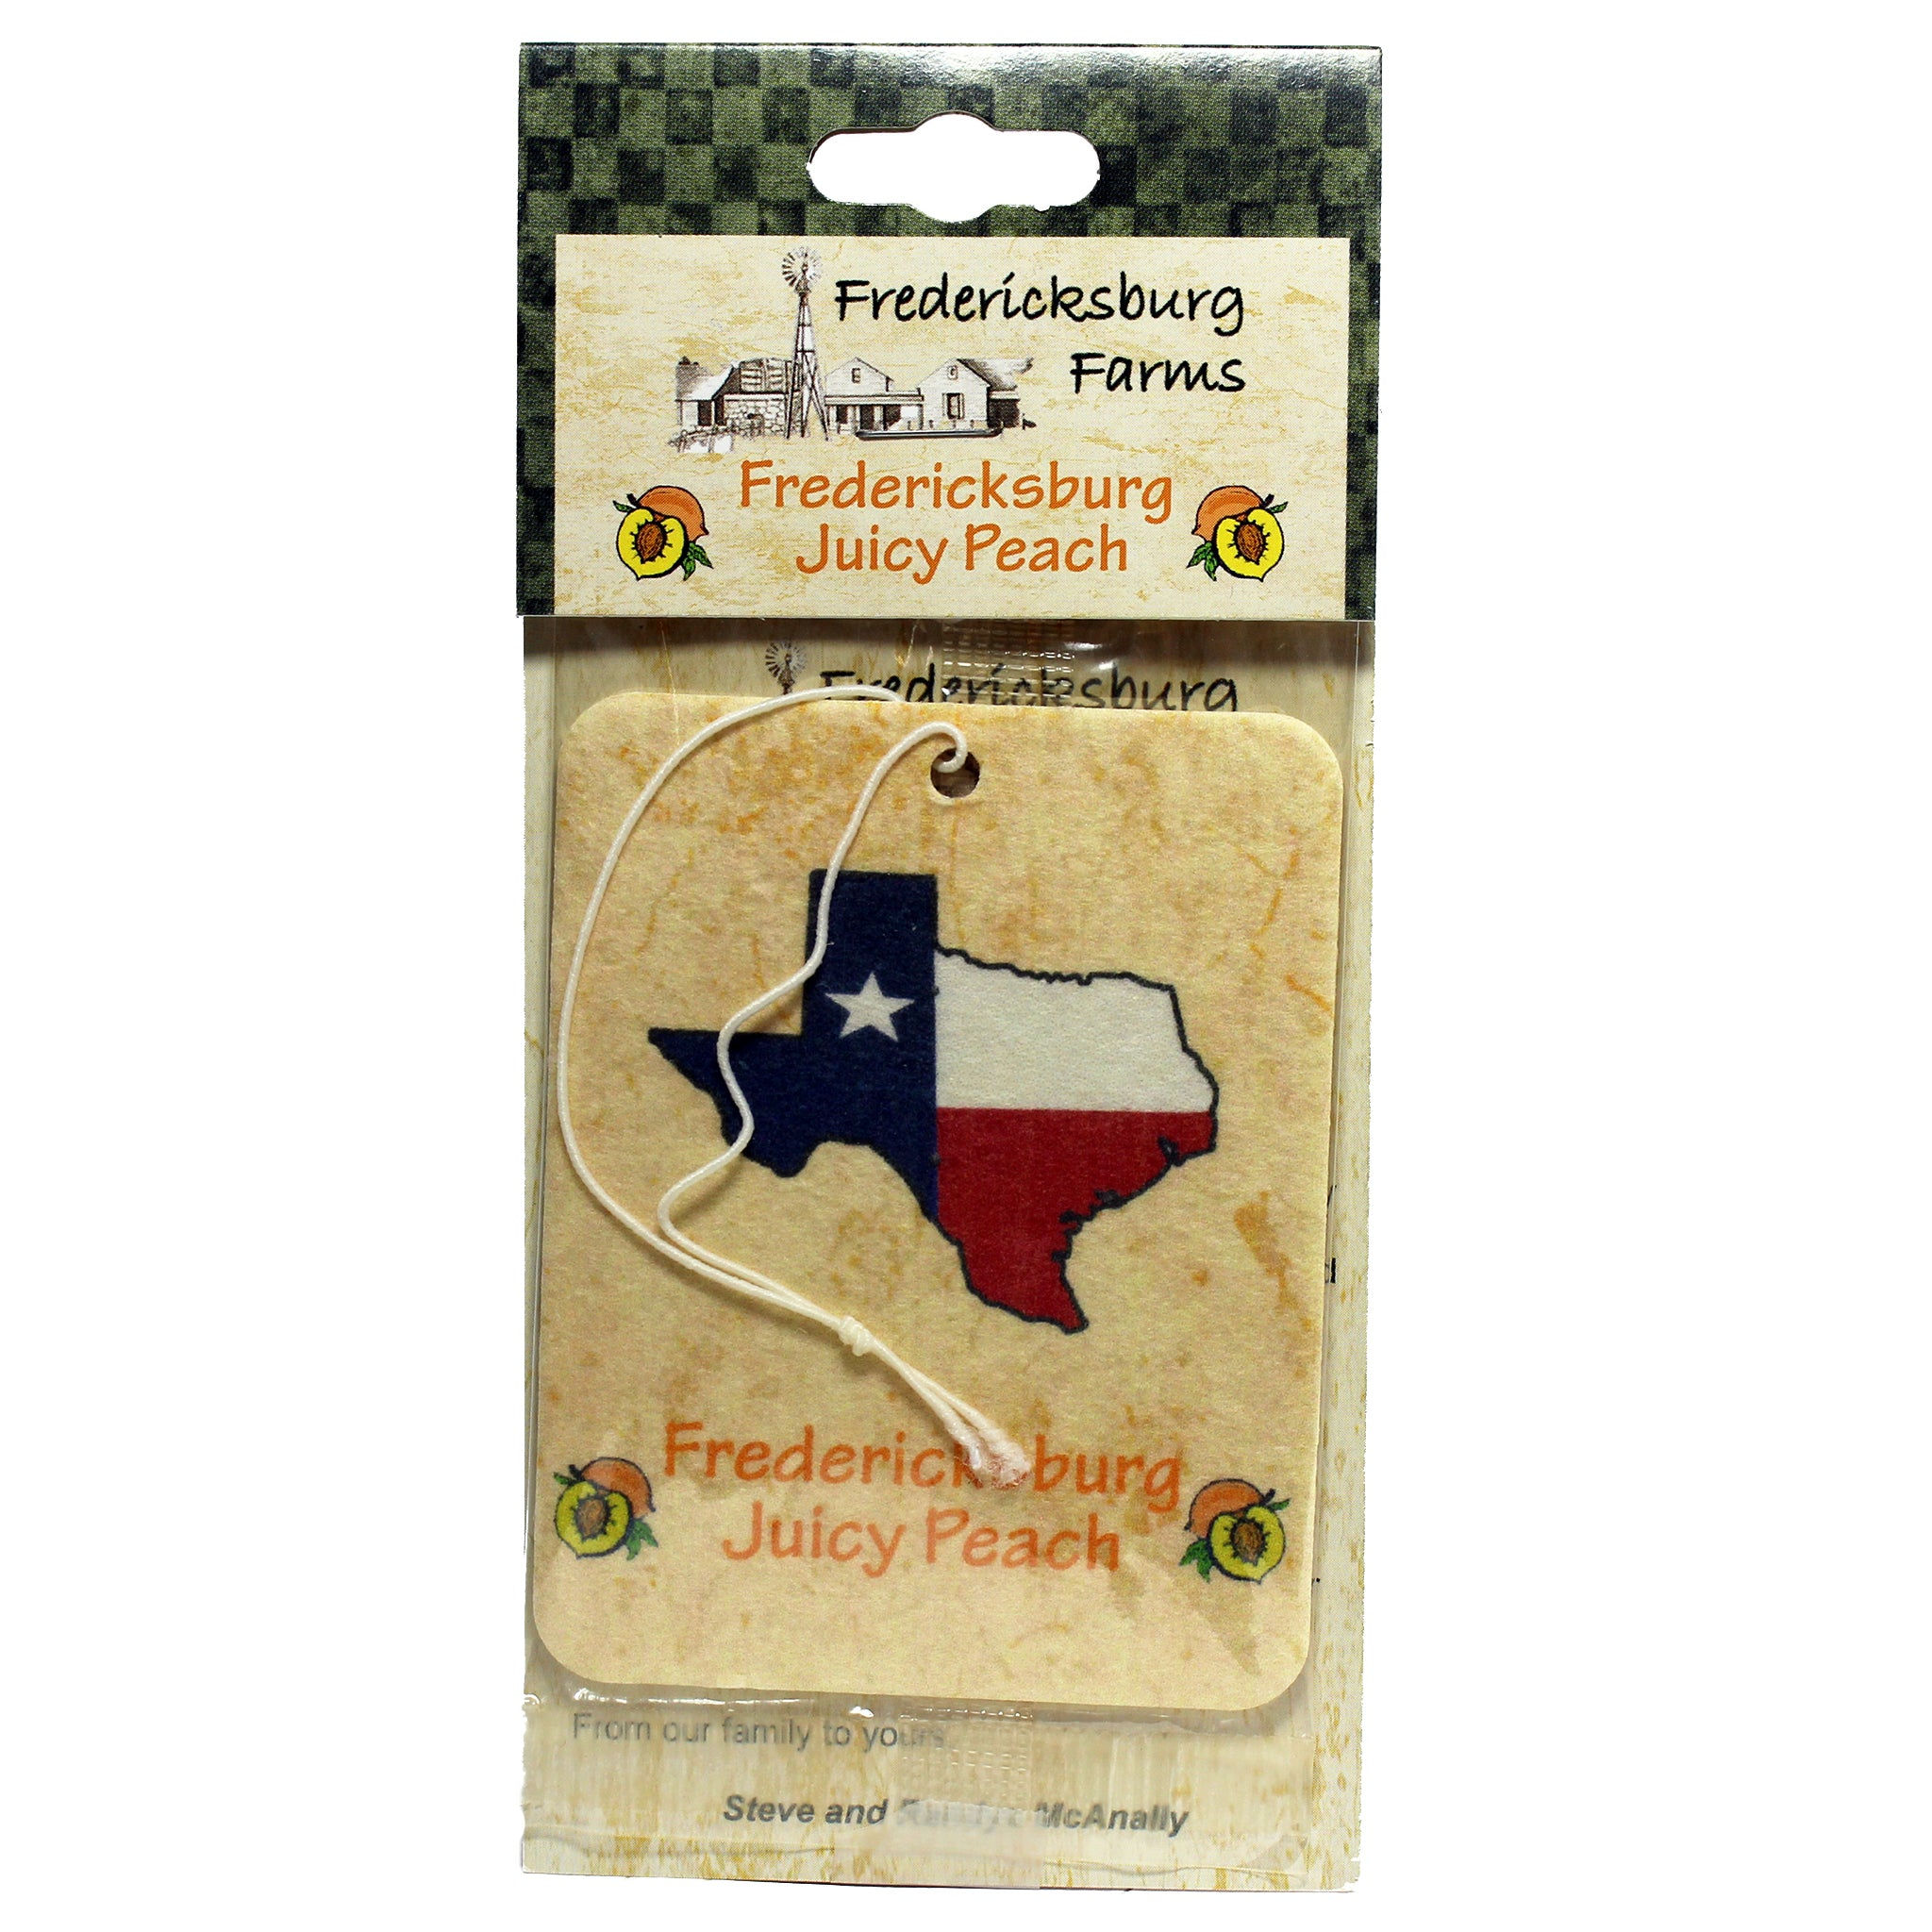 Fredericksburg Juicy Peach Air Freshener